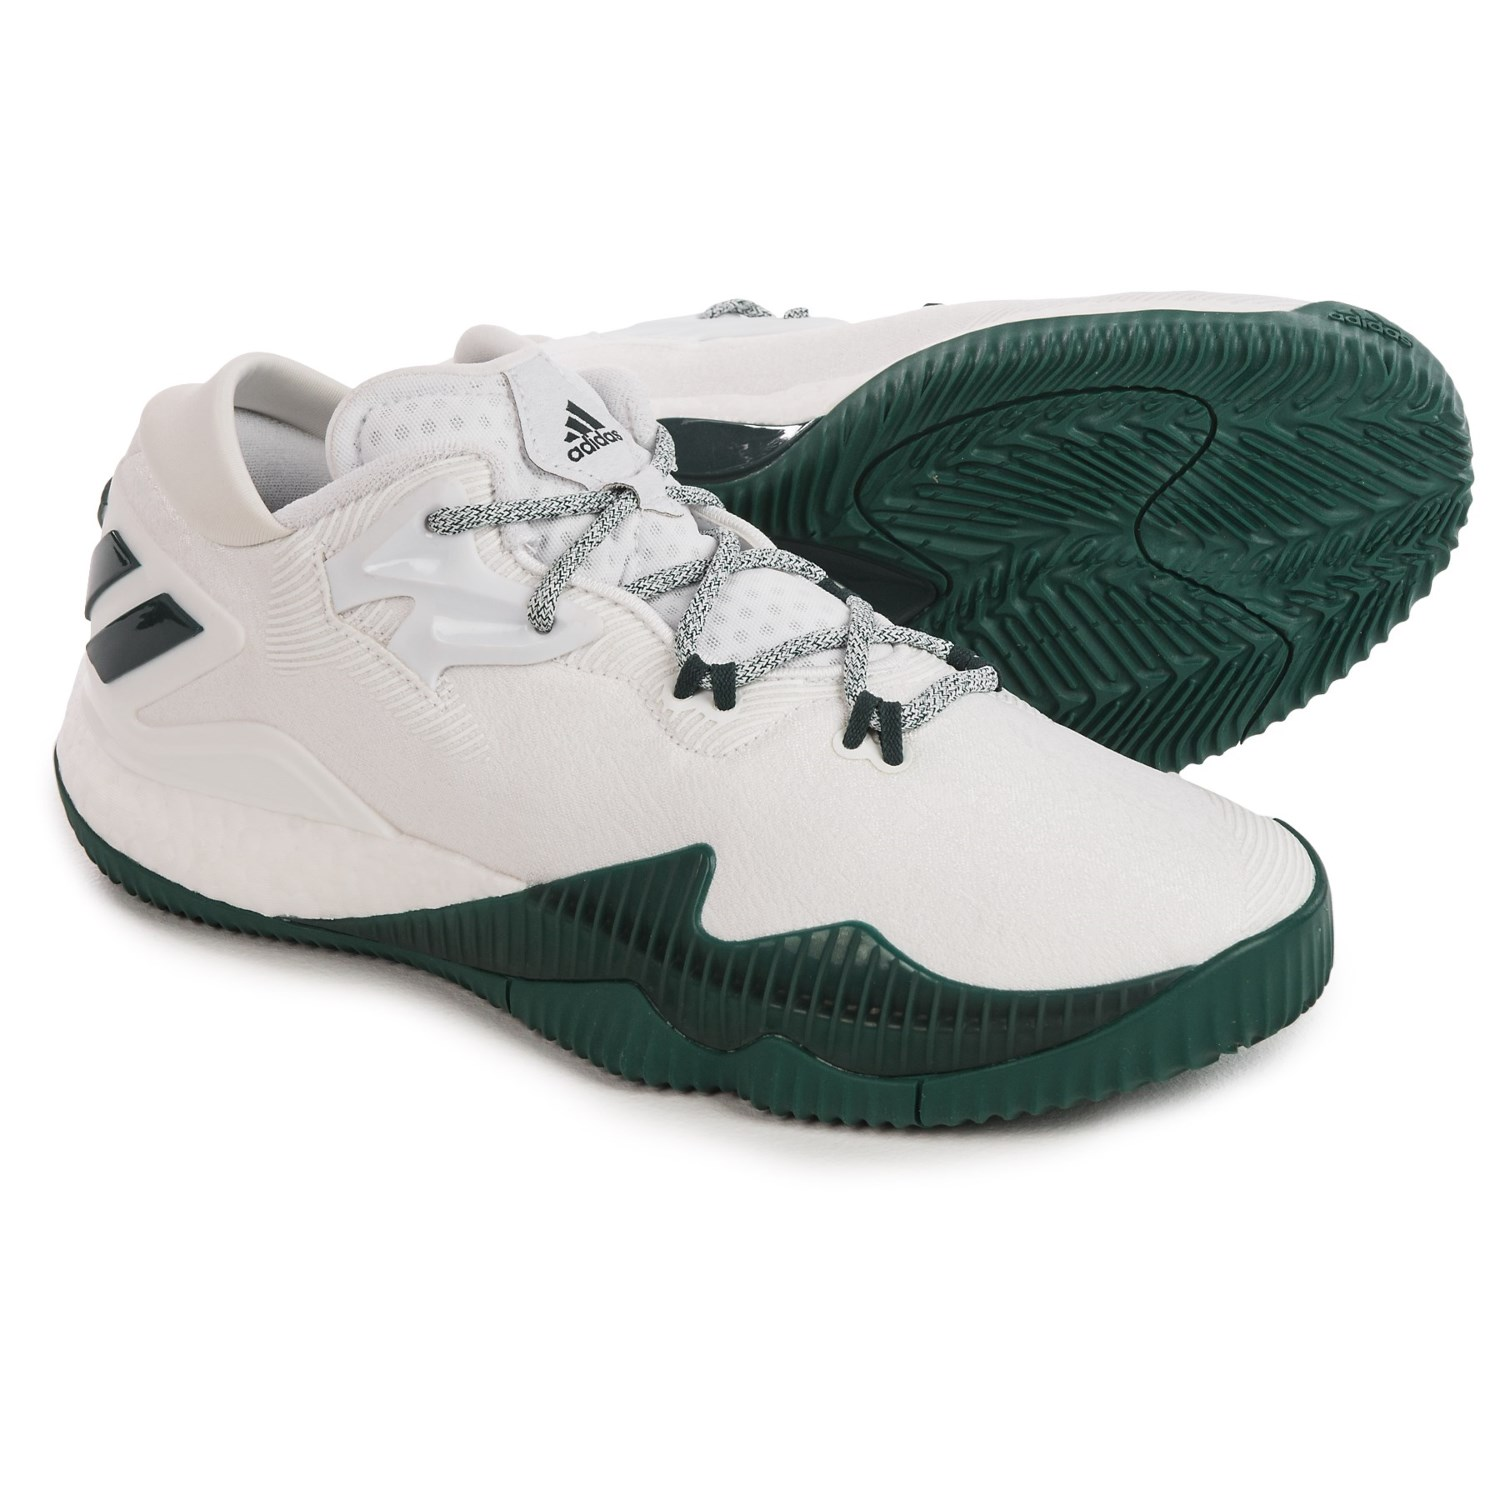 adidas SM Crazylight Boost Low 2016 NBA Basketball Shoes (For Men) in White/ ...  sc 1 st  Sierra Trading Post & adidas SM Crazylight Boost Low 2016 NBA Basketball Shoes (For Men ... azcodes.com